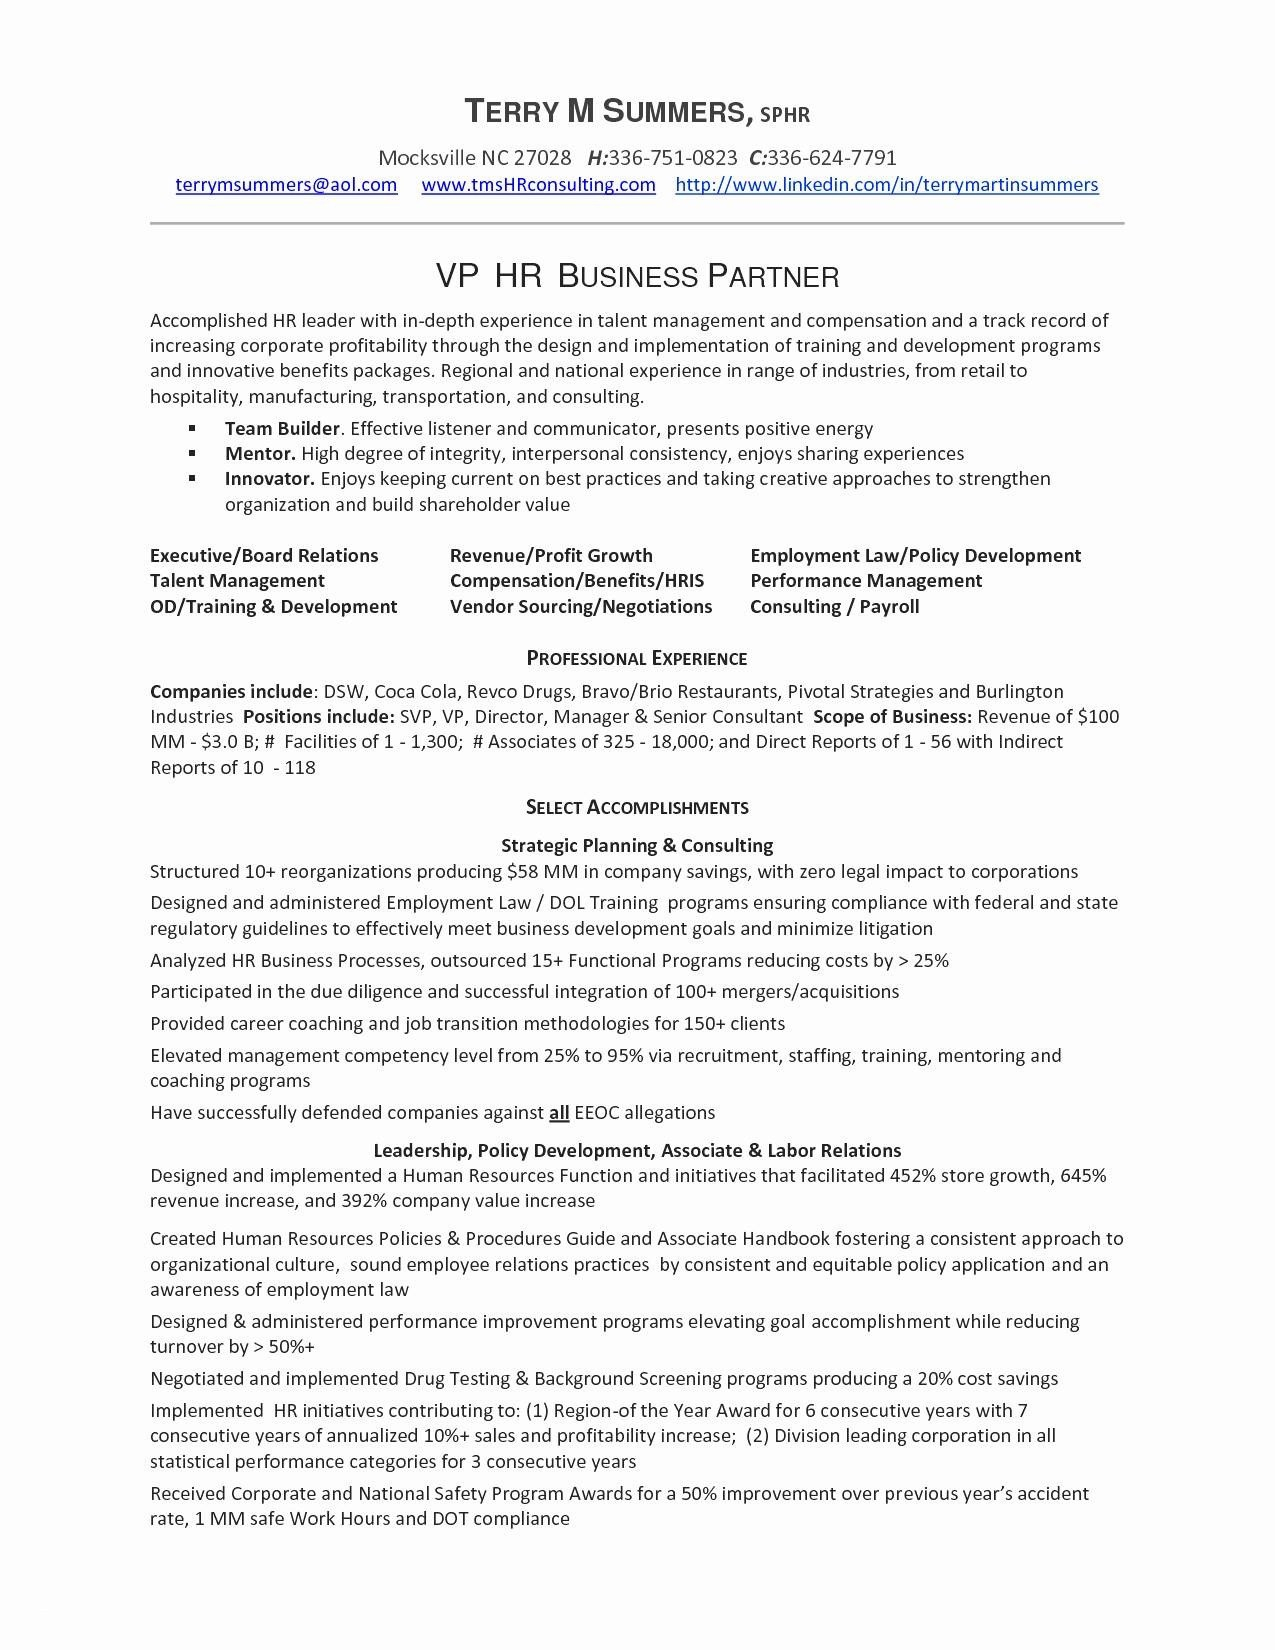 Product Manager Resume Sample - Training and Development Resume Sample New Product Management Resume